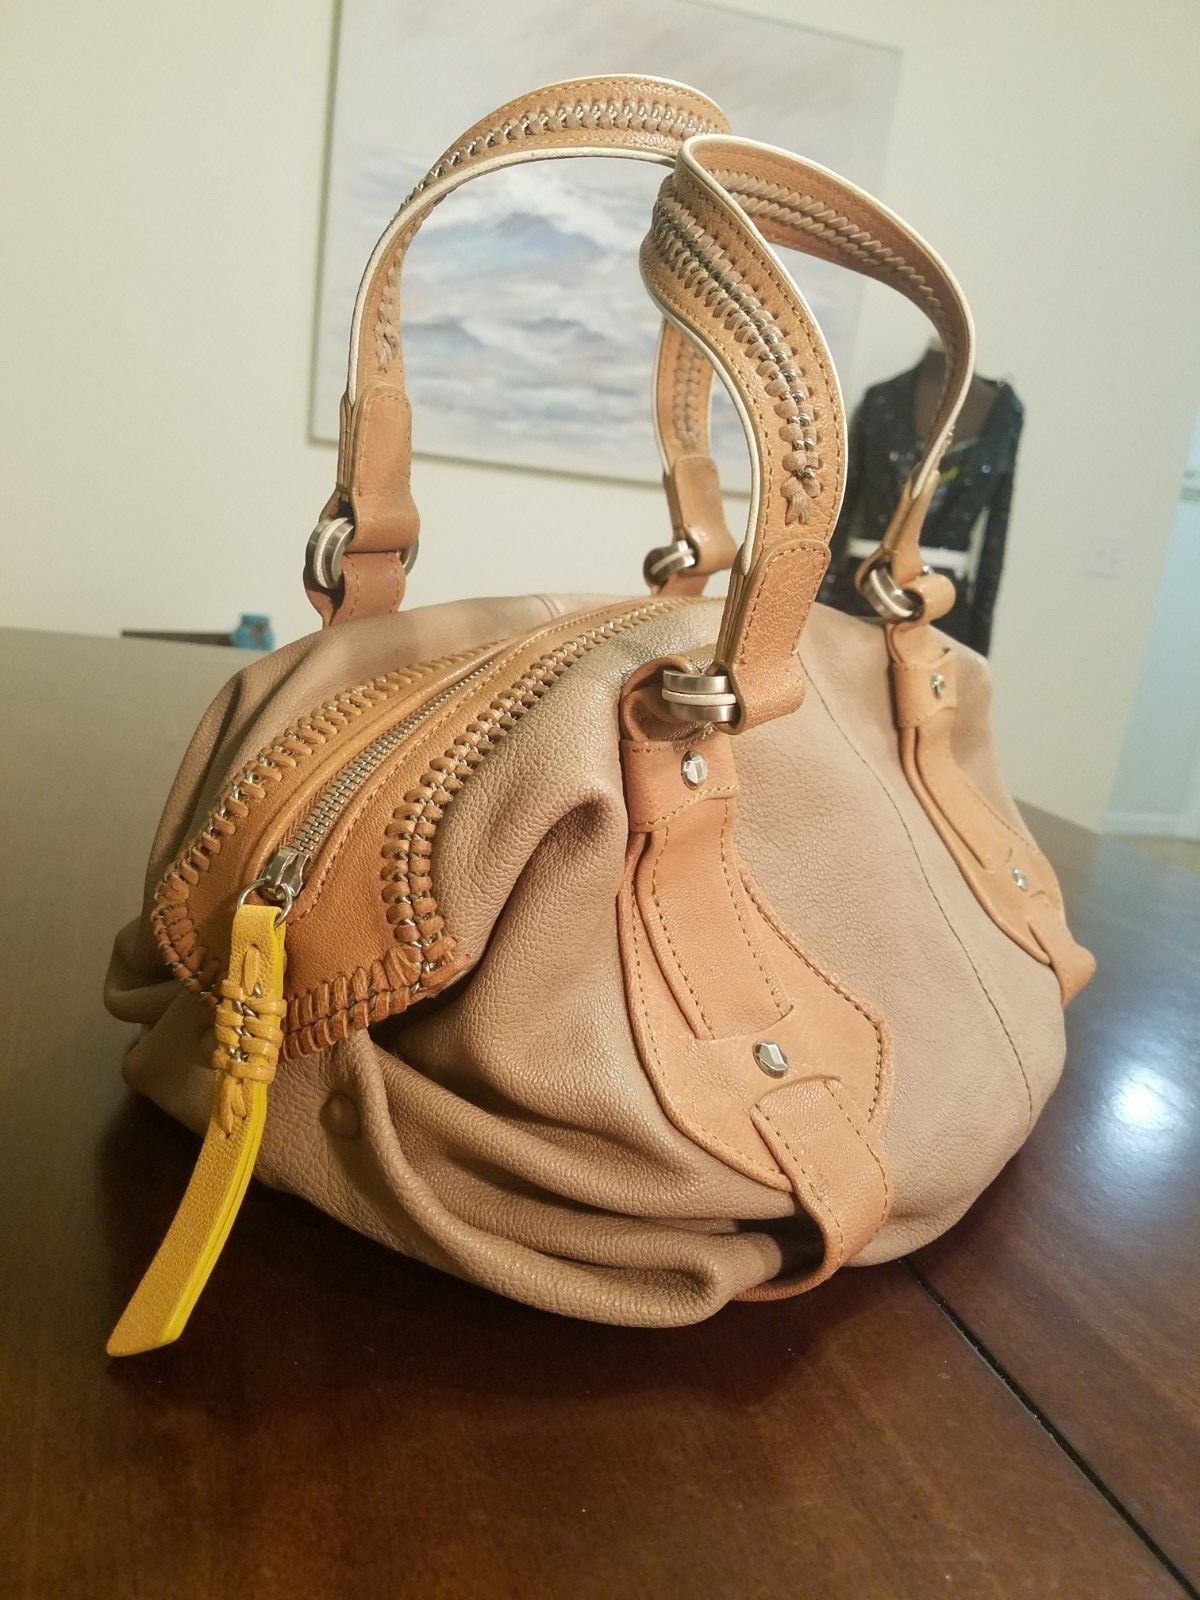 3027972e1a S l1600. S l1600. Previous. Cole Haan Collection Beige Nude Tan Yellow  Chain Accents Satchel Handbag NWOT